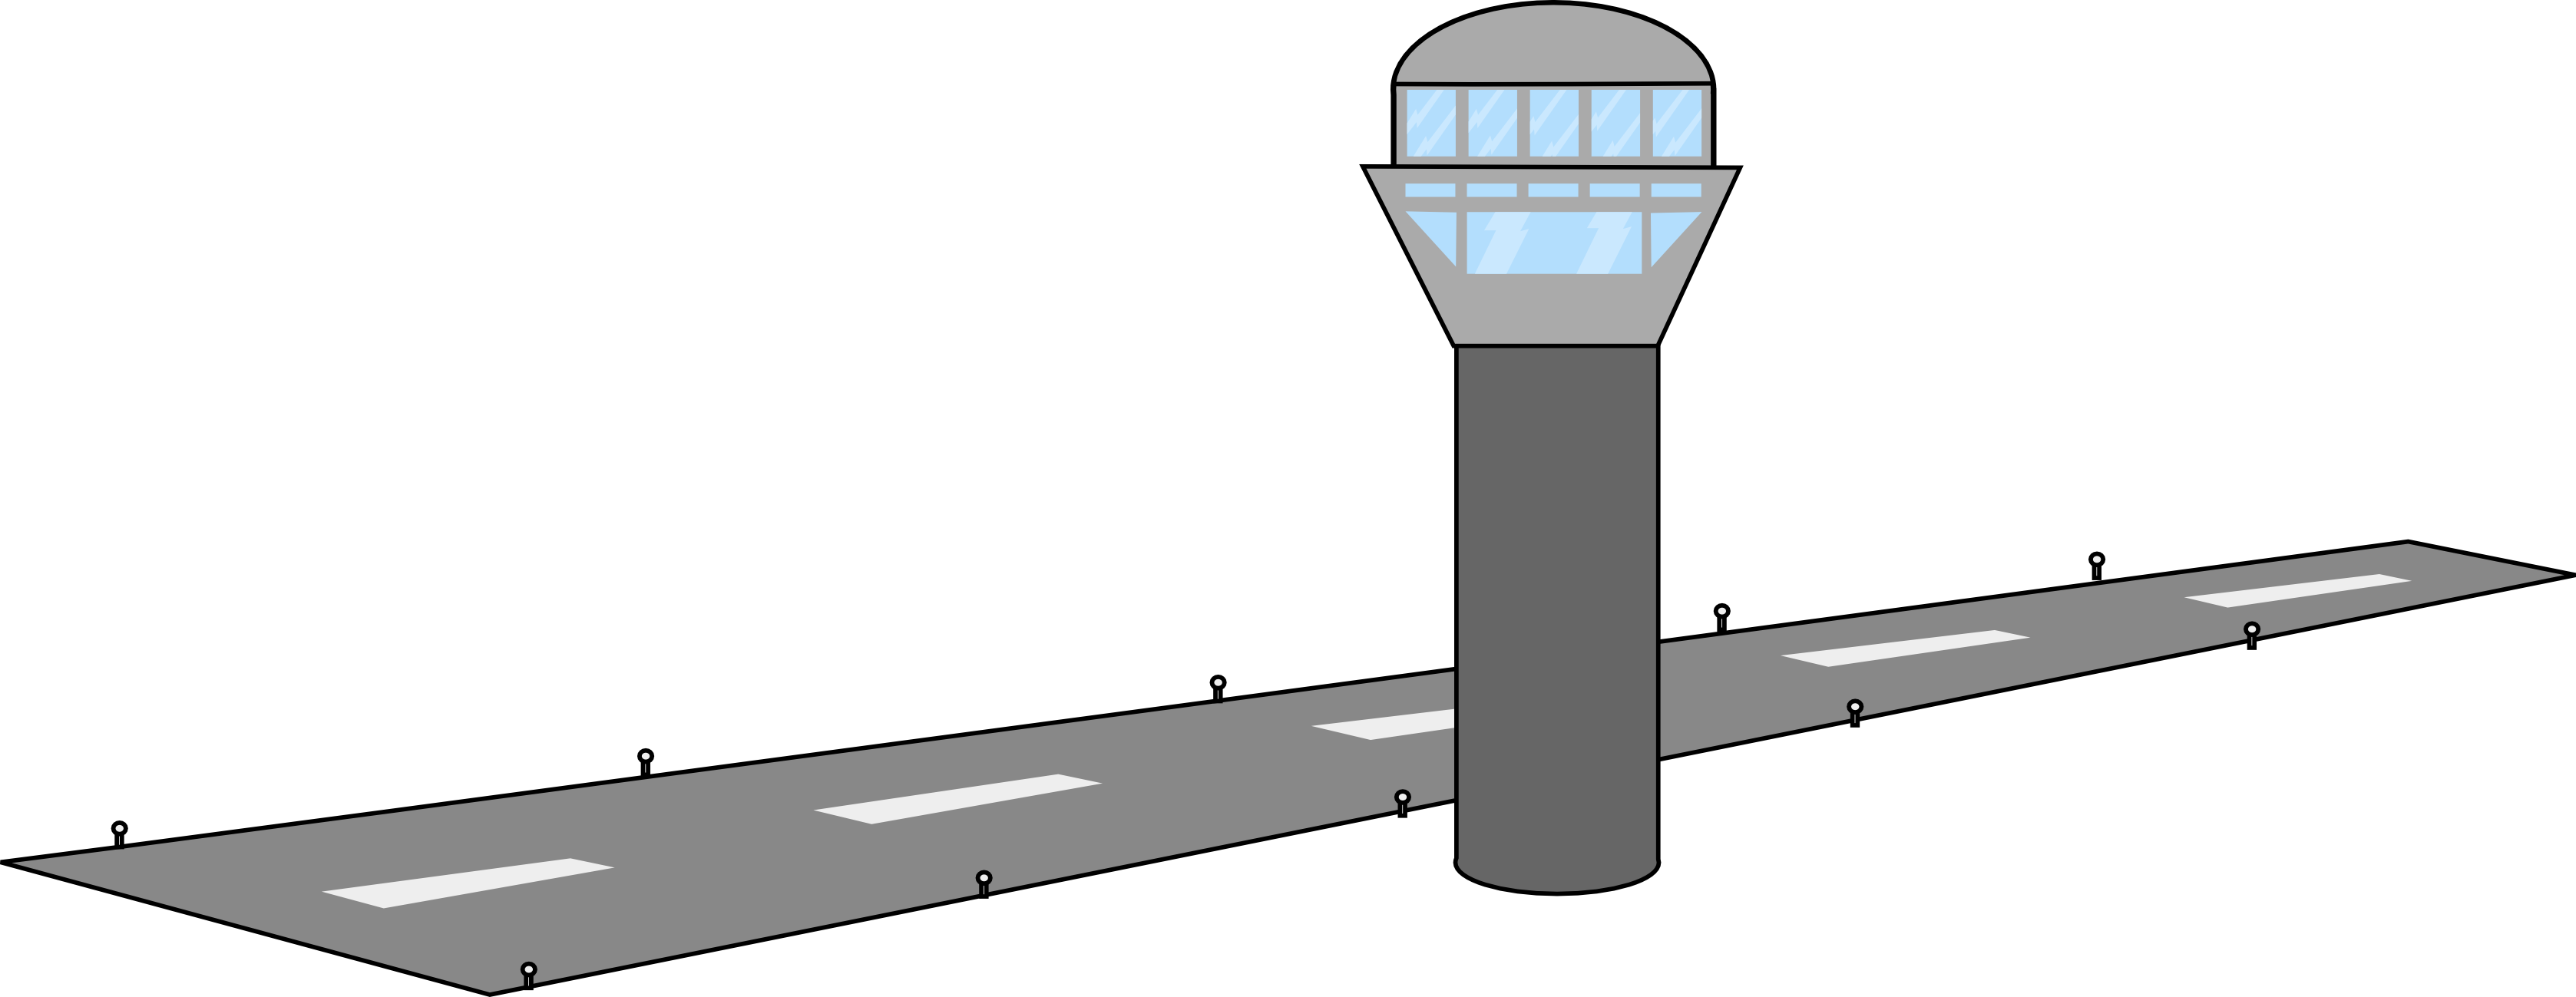 airport clipart airport tower